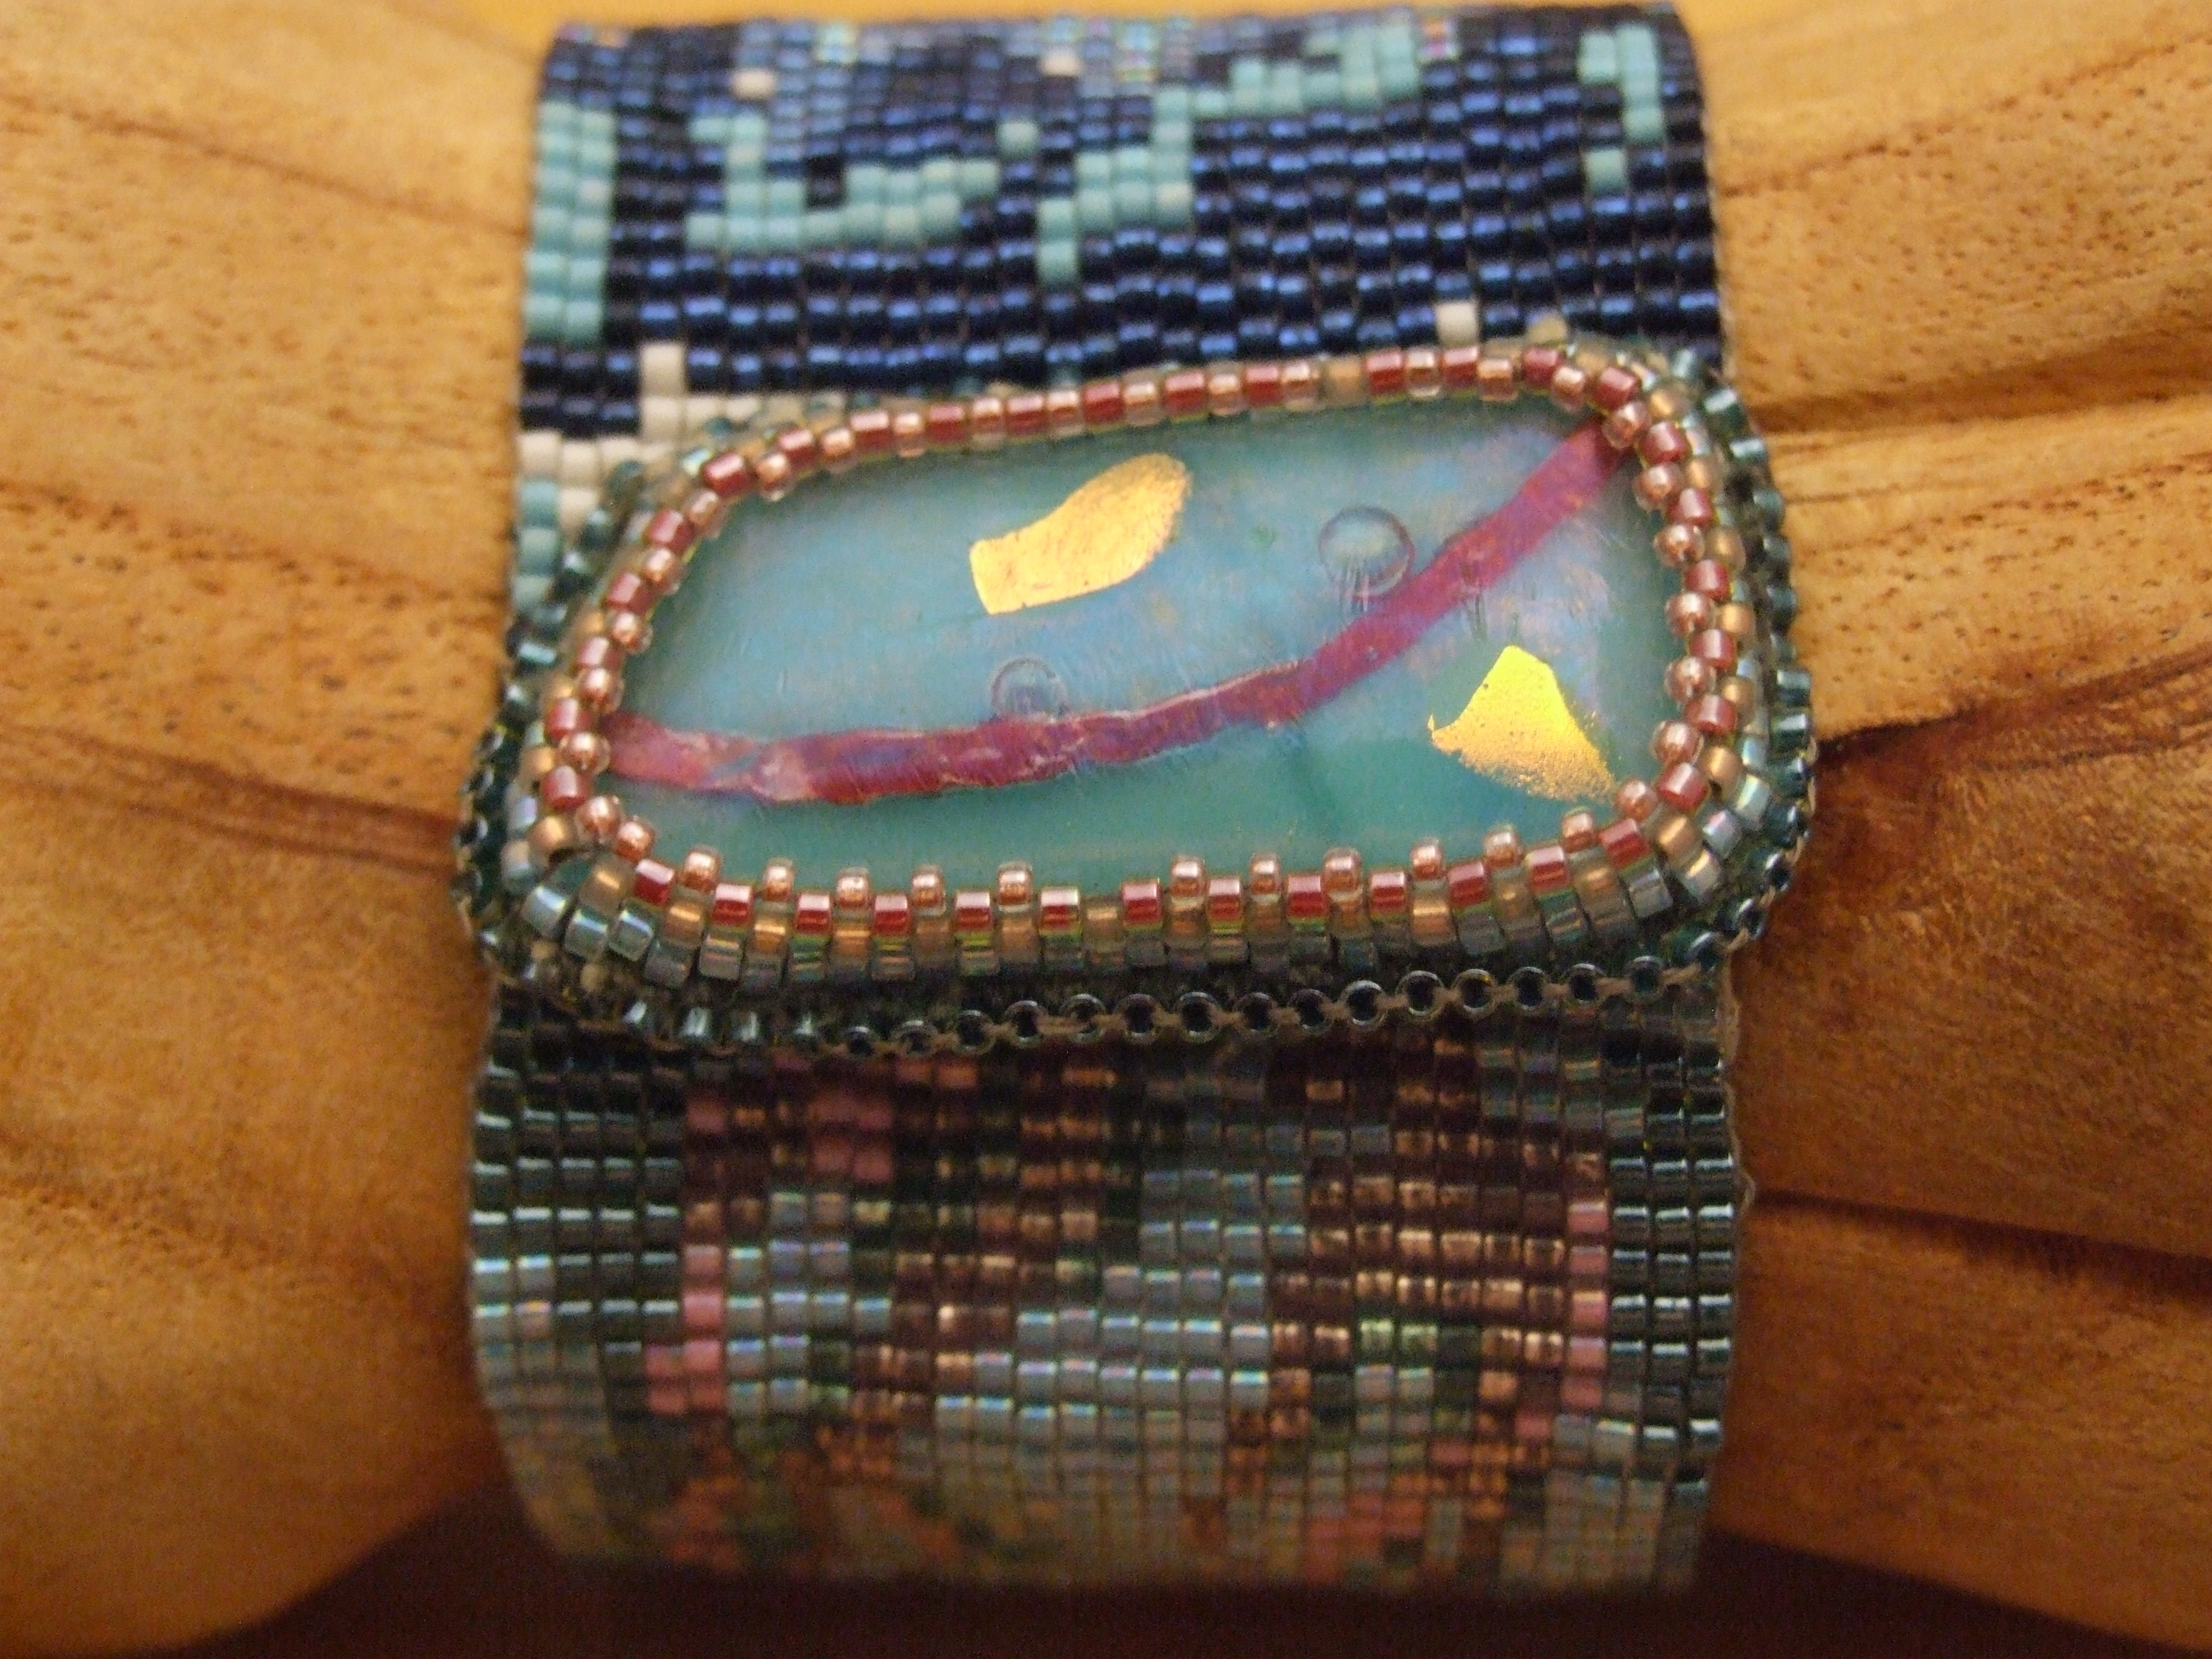 Loom woven beaded bracelet, with fused glass clasp by Lynn Smythe, made with Miyuki Delicas.